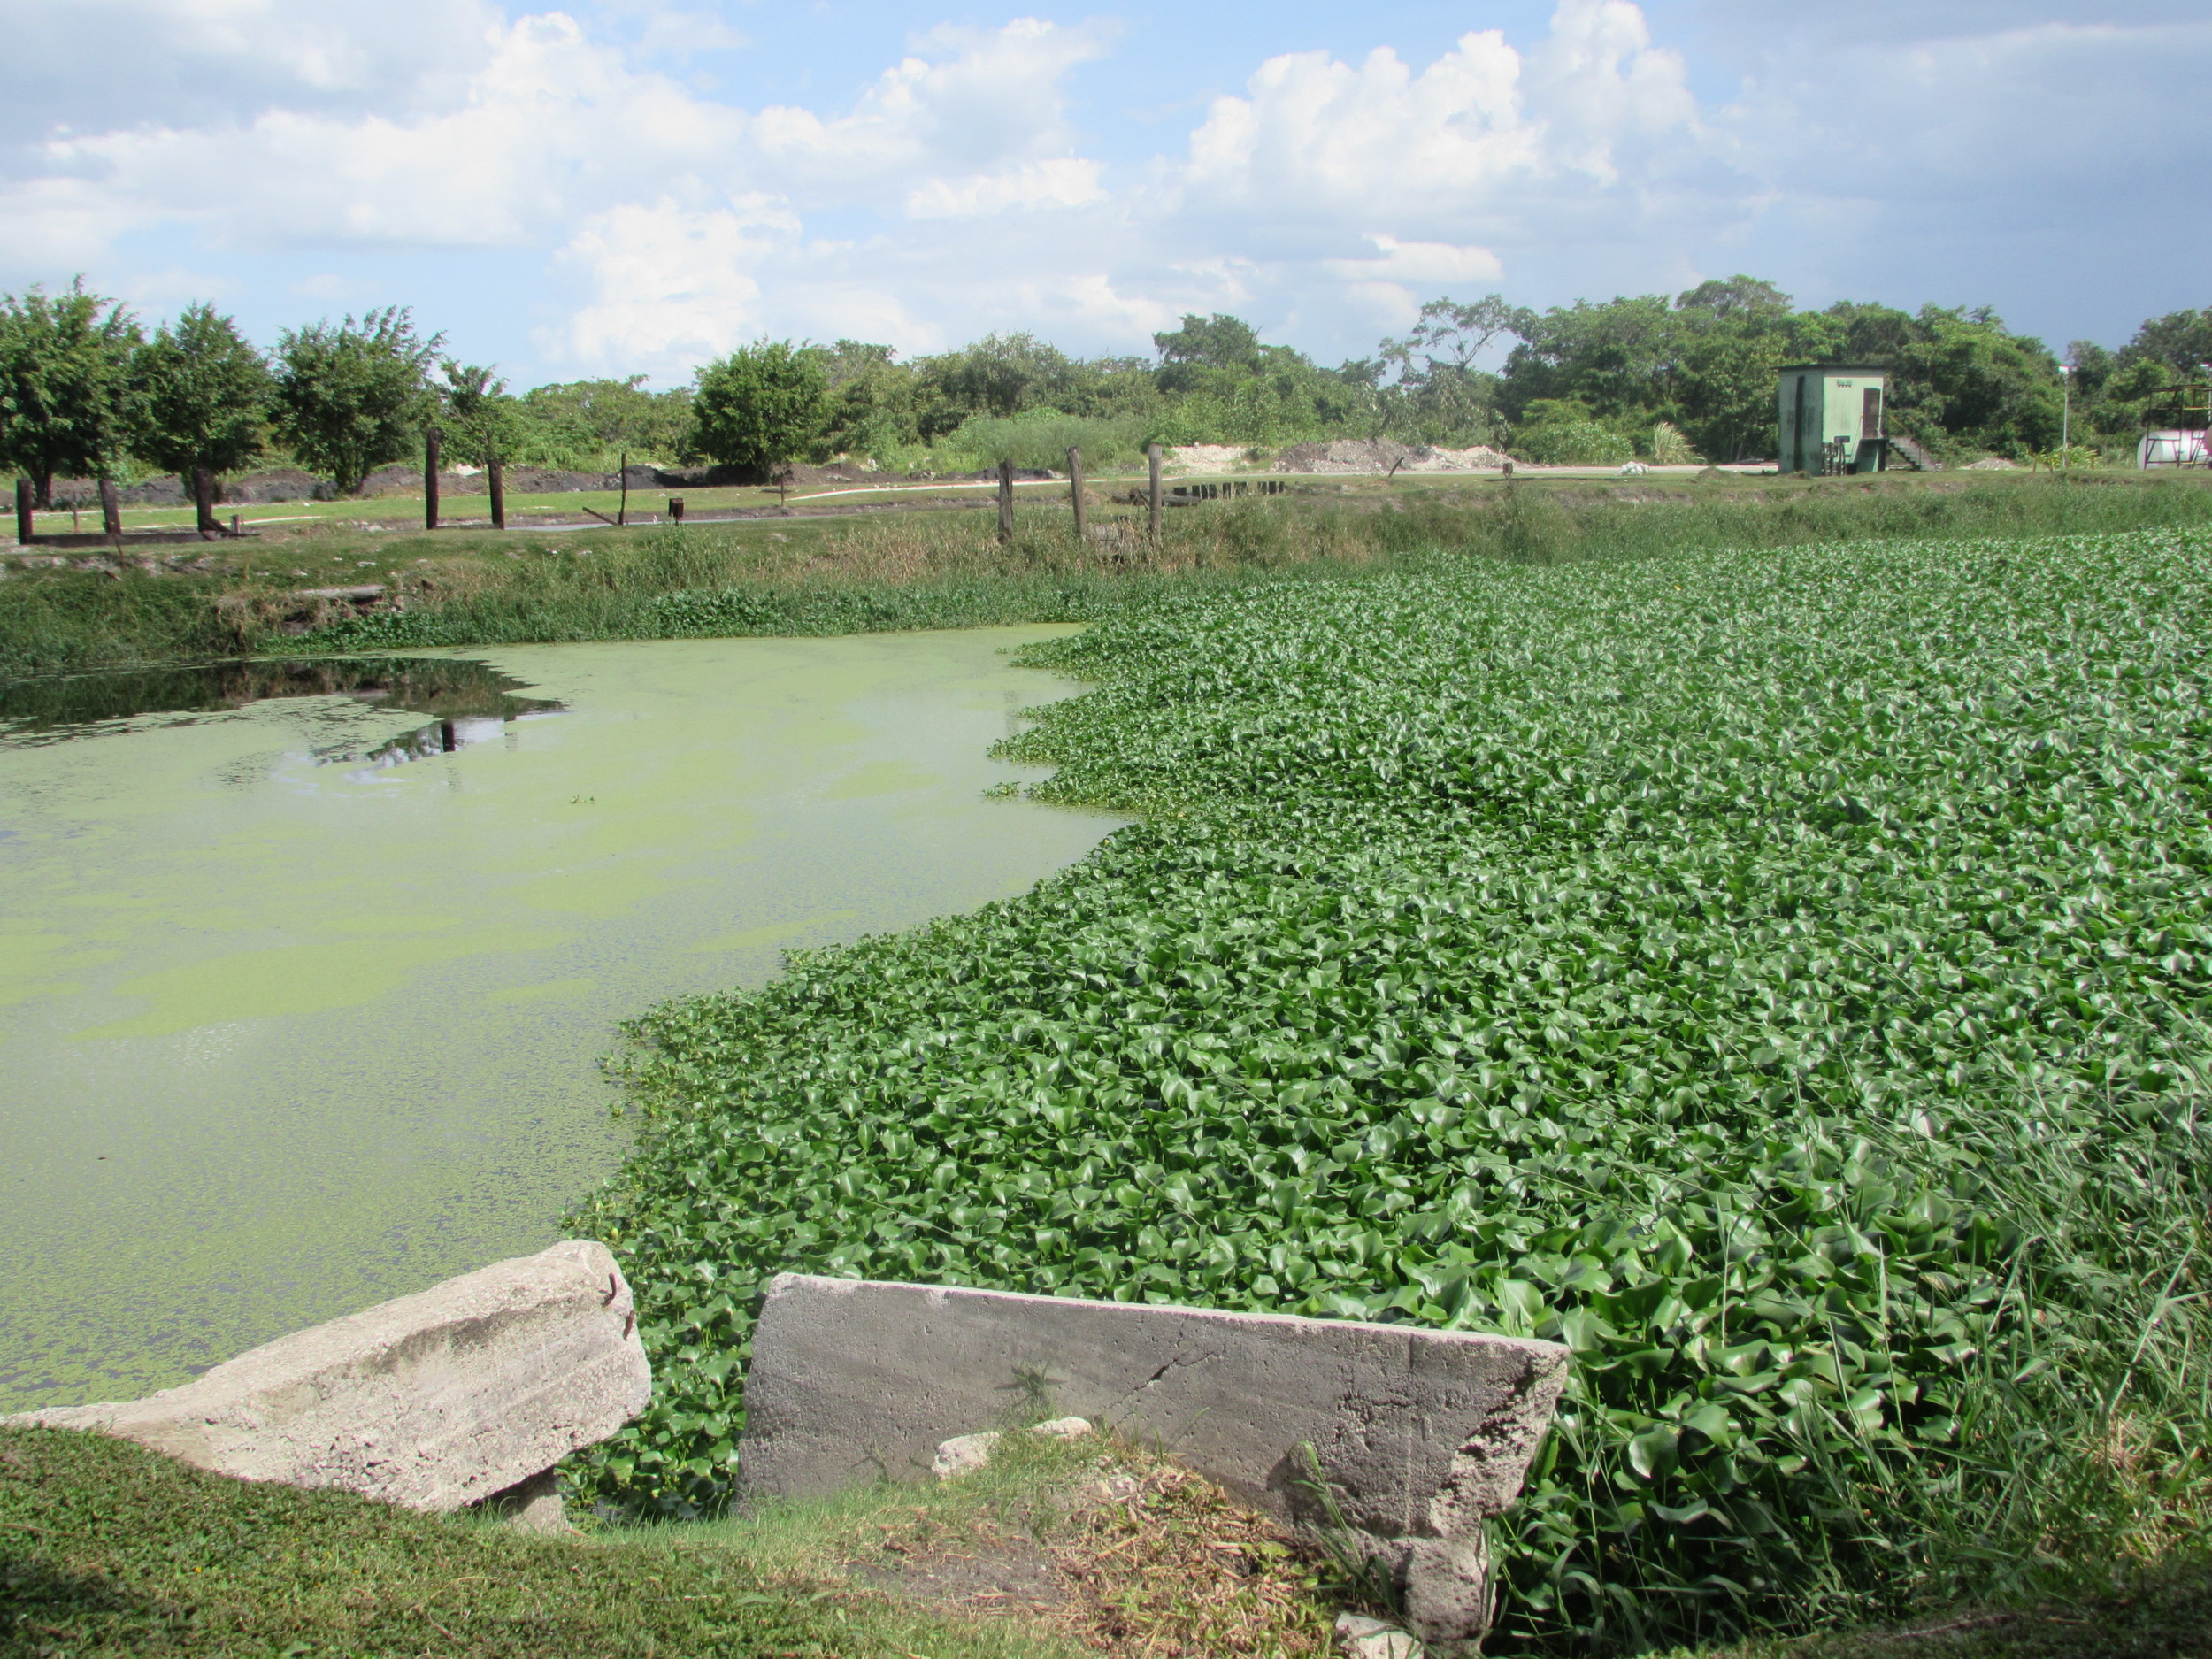 One of the Oxidation Ponds at the BSI Waste Water Treatment System